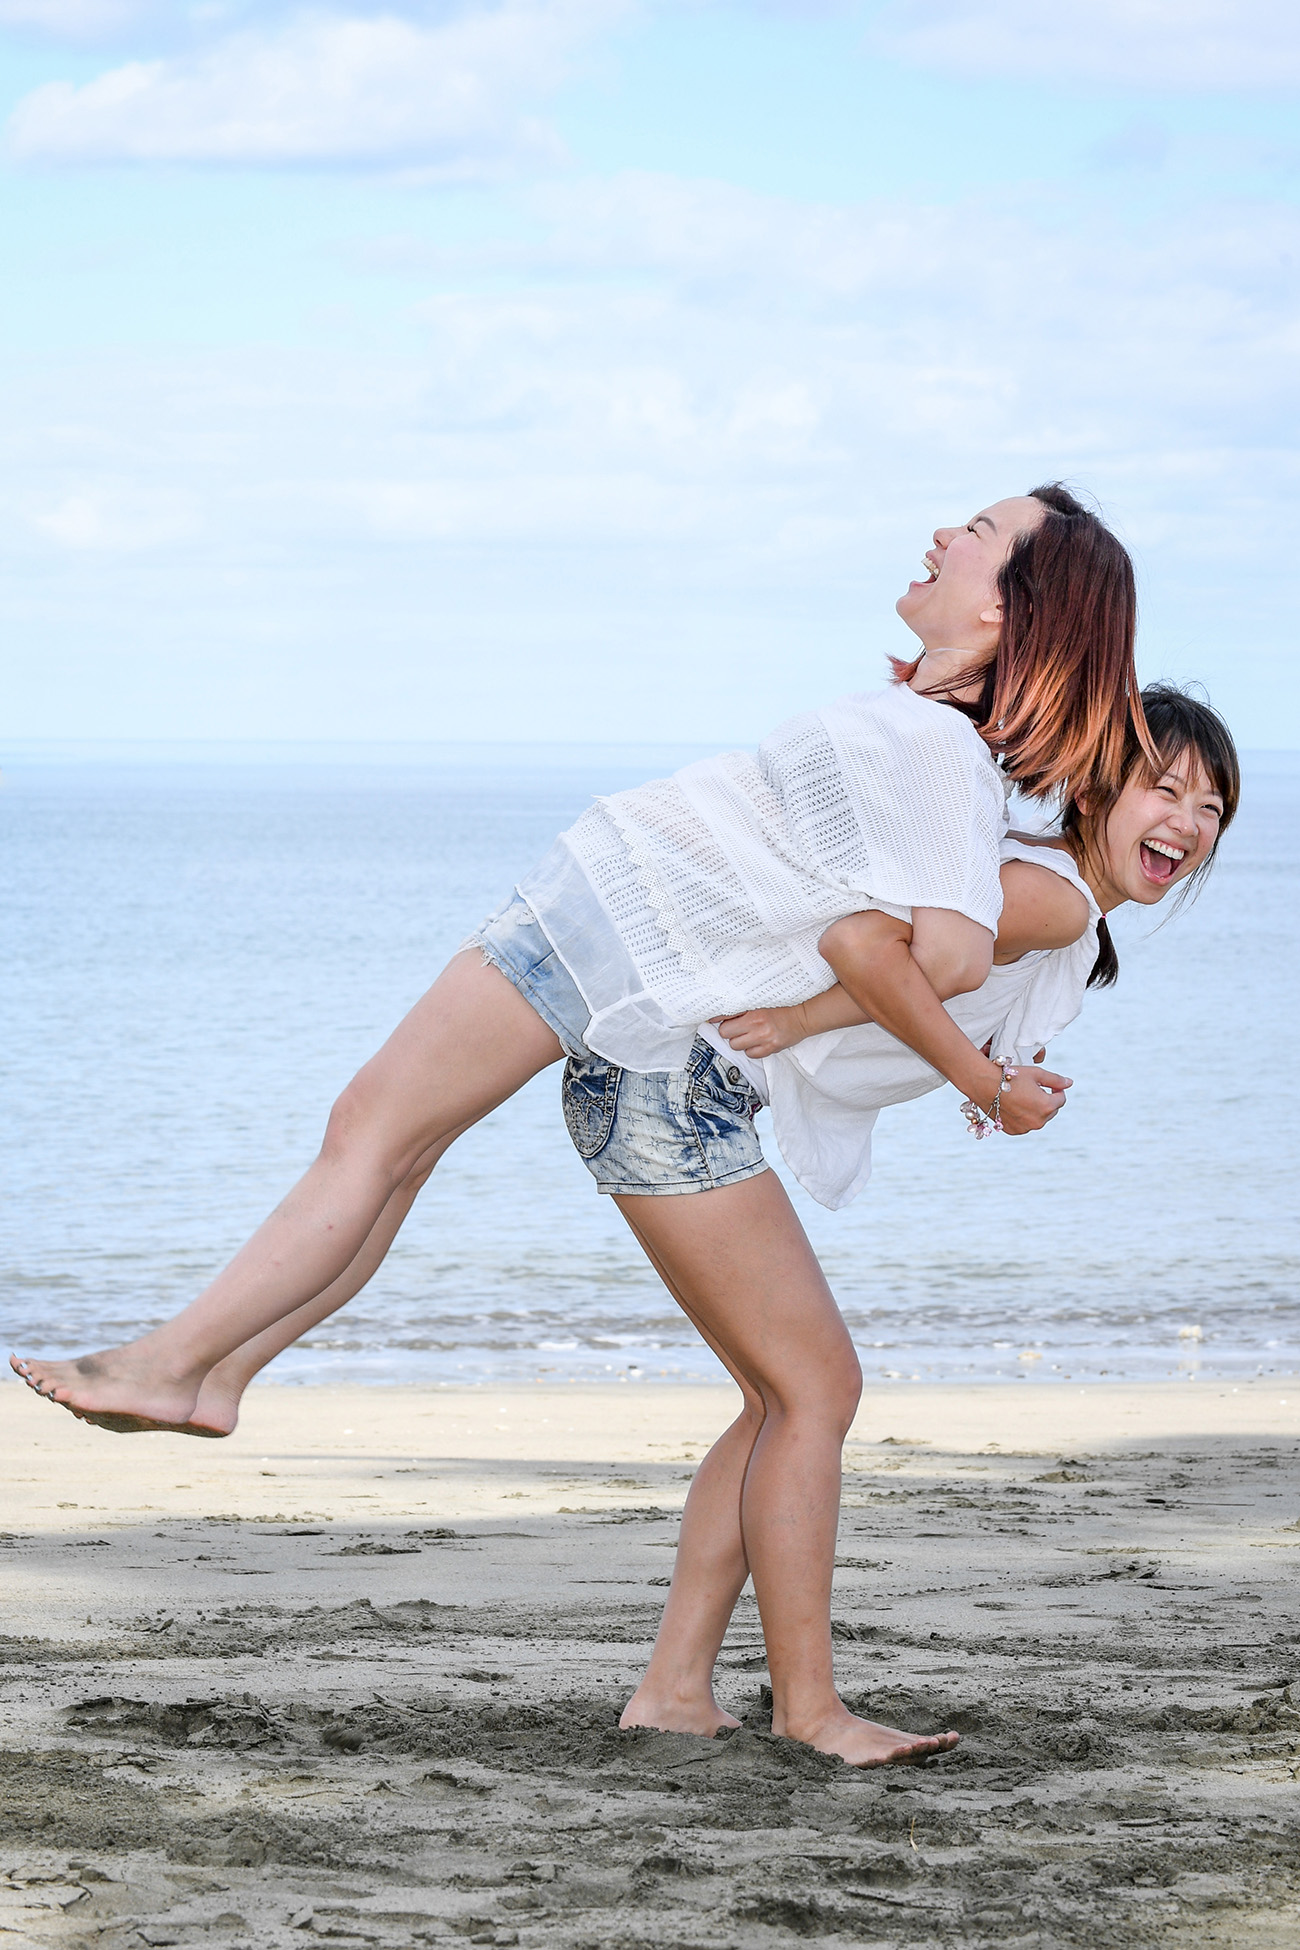 Two sisters playing on the beach